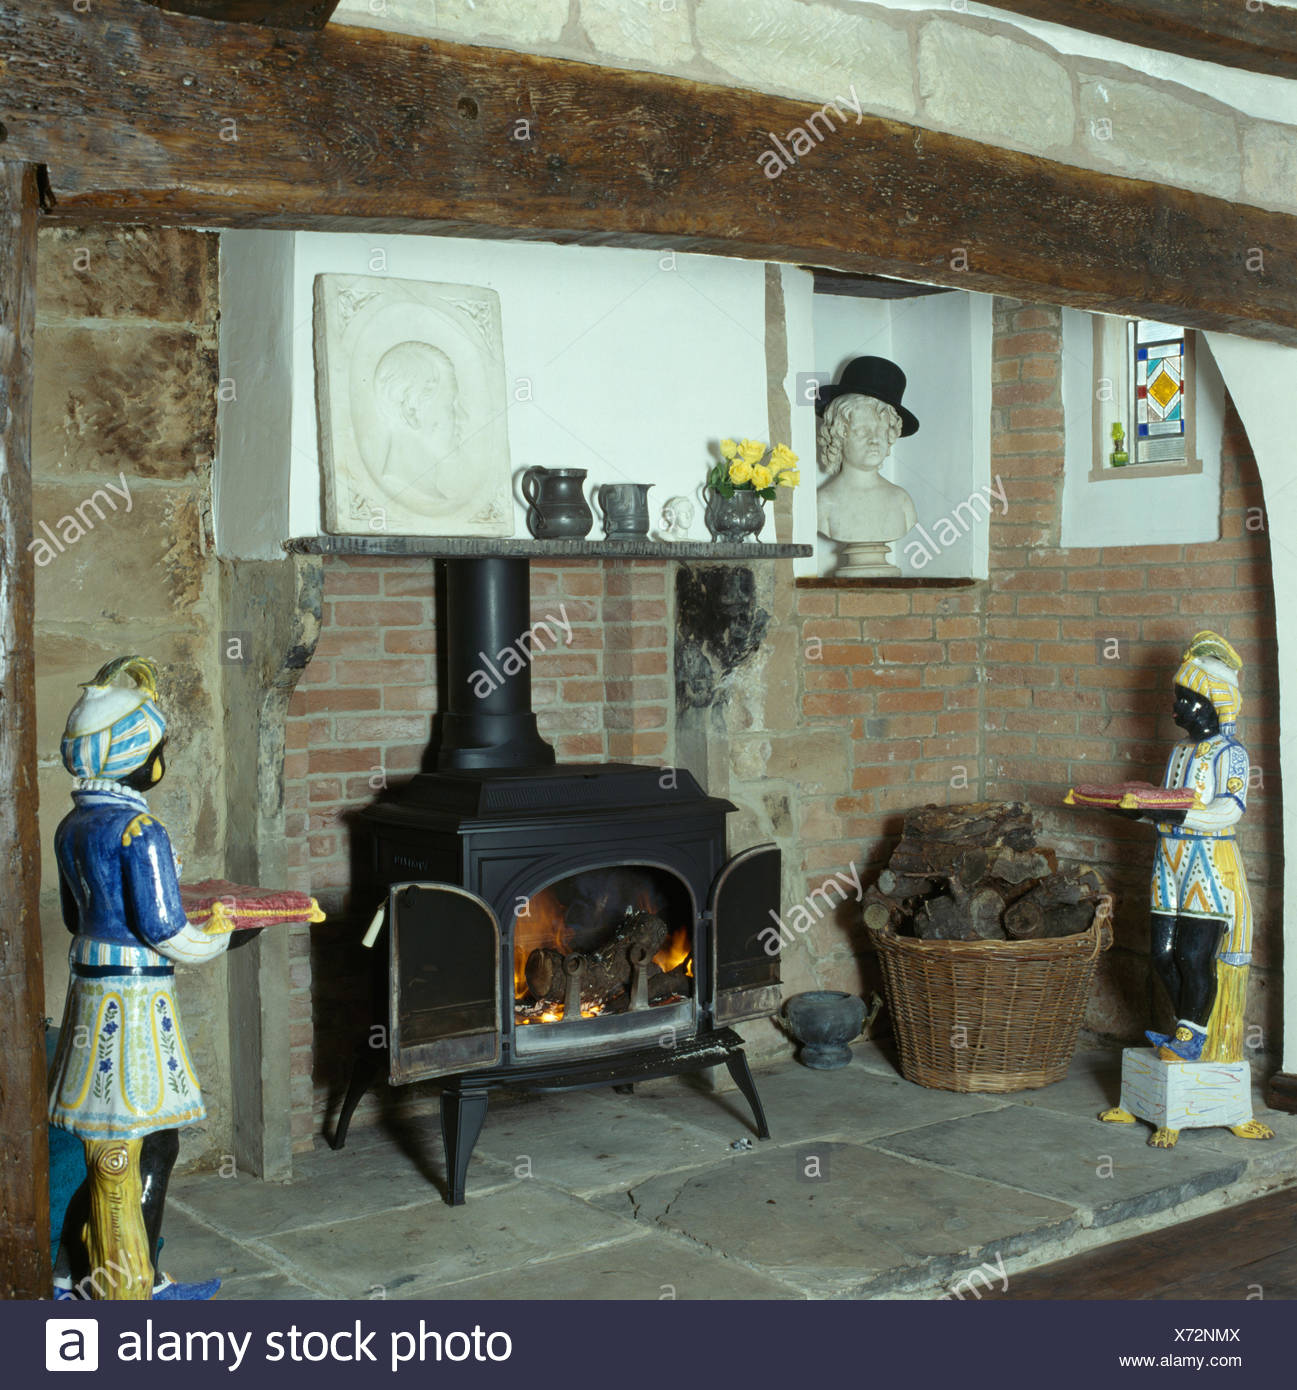 Blackamoor china figures either side of a wood burning stove in an inglenook fireplace Stock Photo